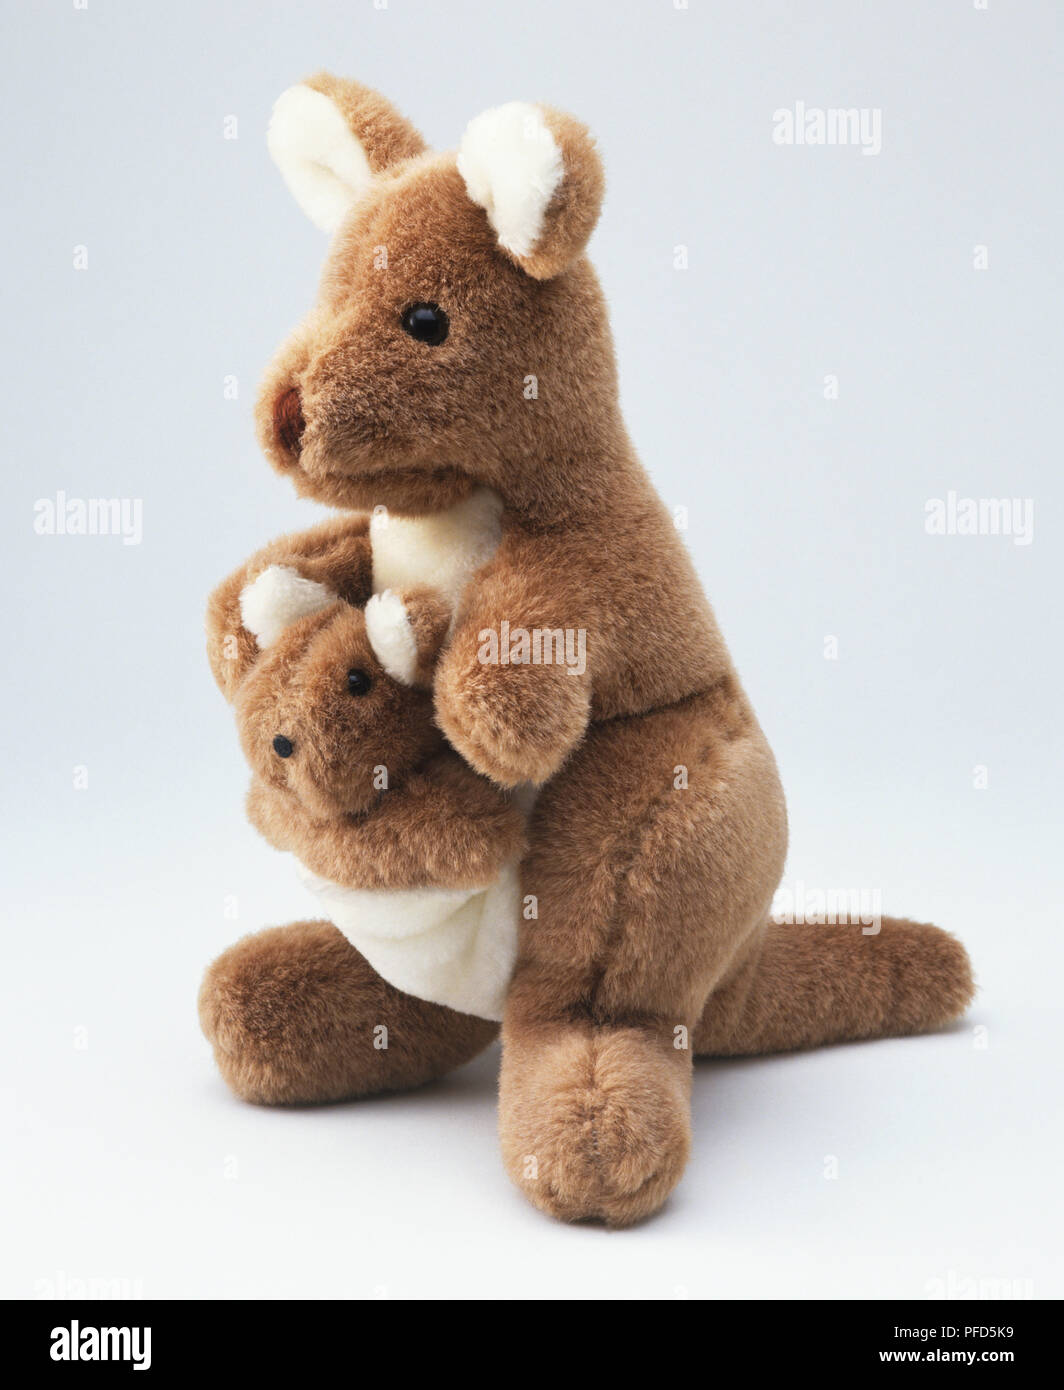 Kangaroo Stuffed Animal Stock Photos Kangaroo Stuffed Animal Stock